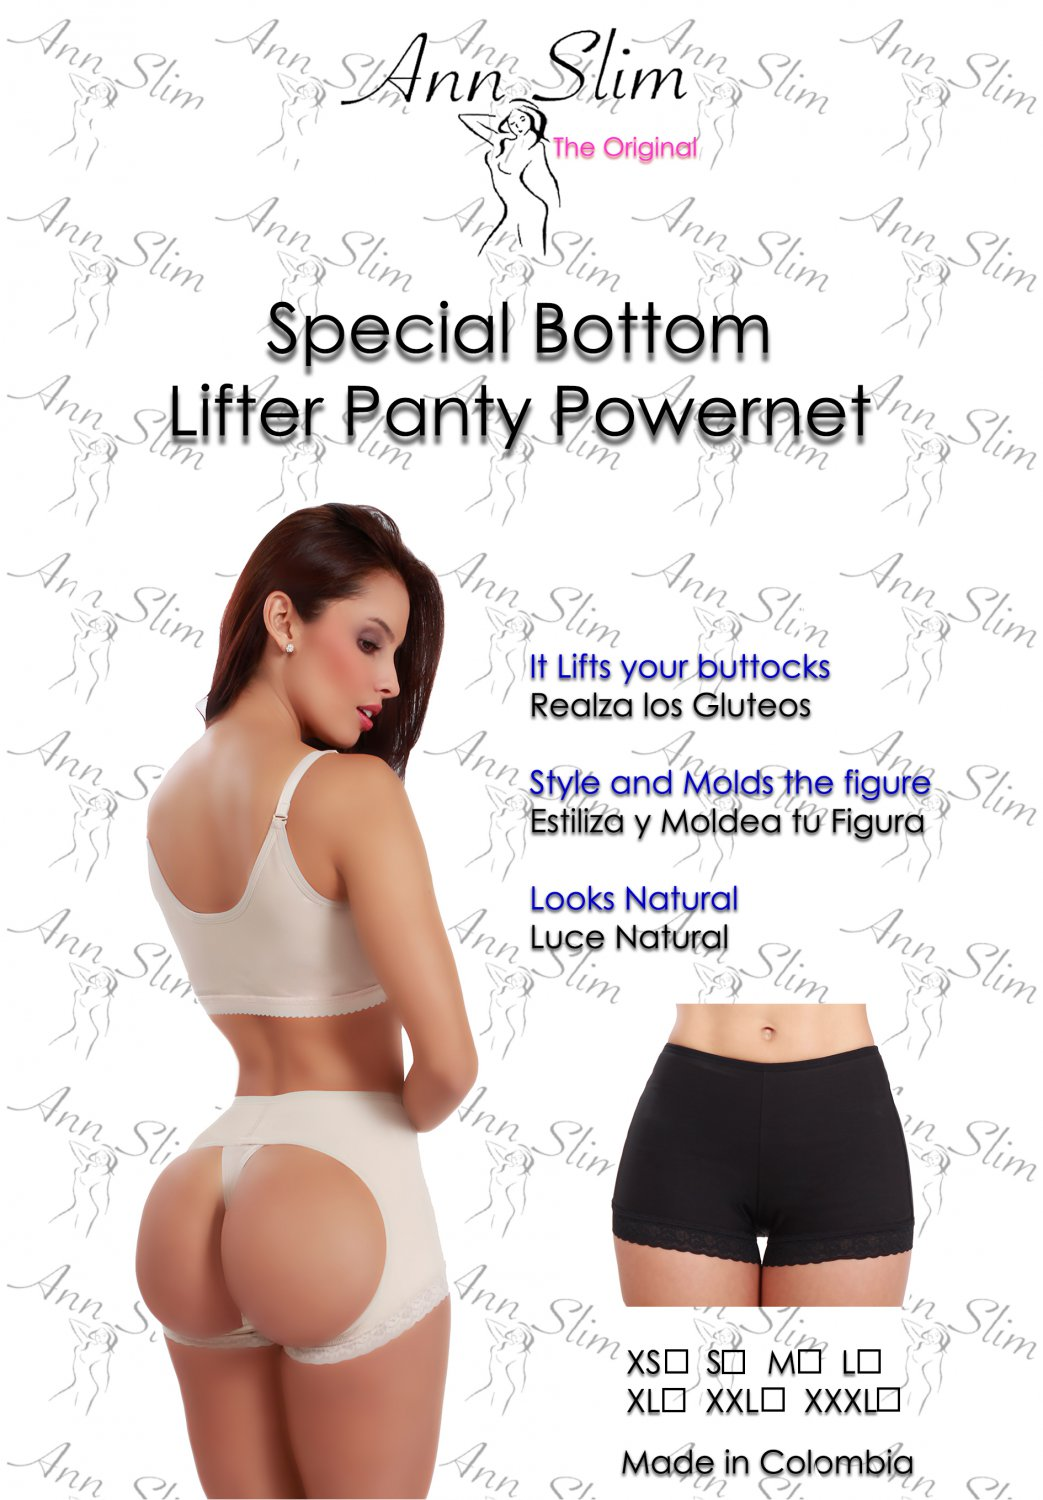 ANN SLIM CONTROL BUTT LIFTER POWERNET PANTY POST SURGERY COLOMBIA SHAPEWEAR BLACK SIZE XL